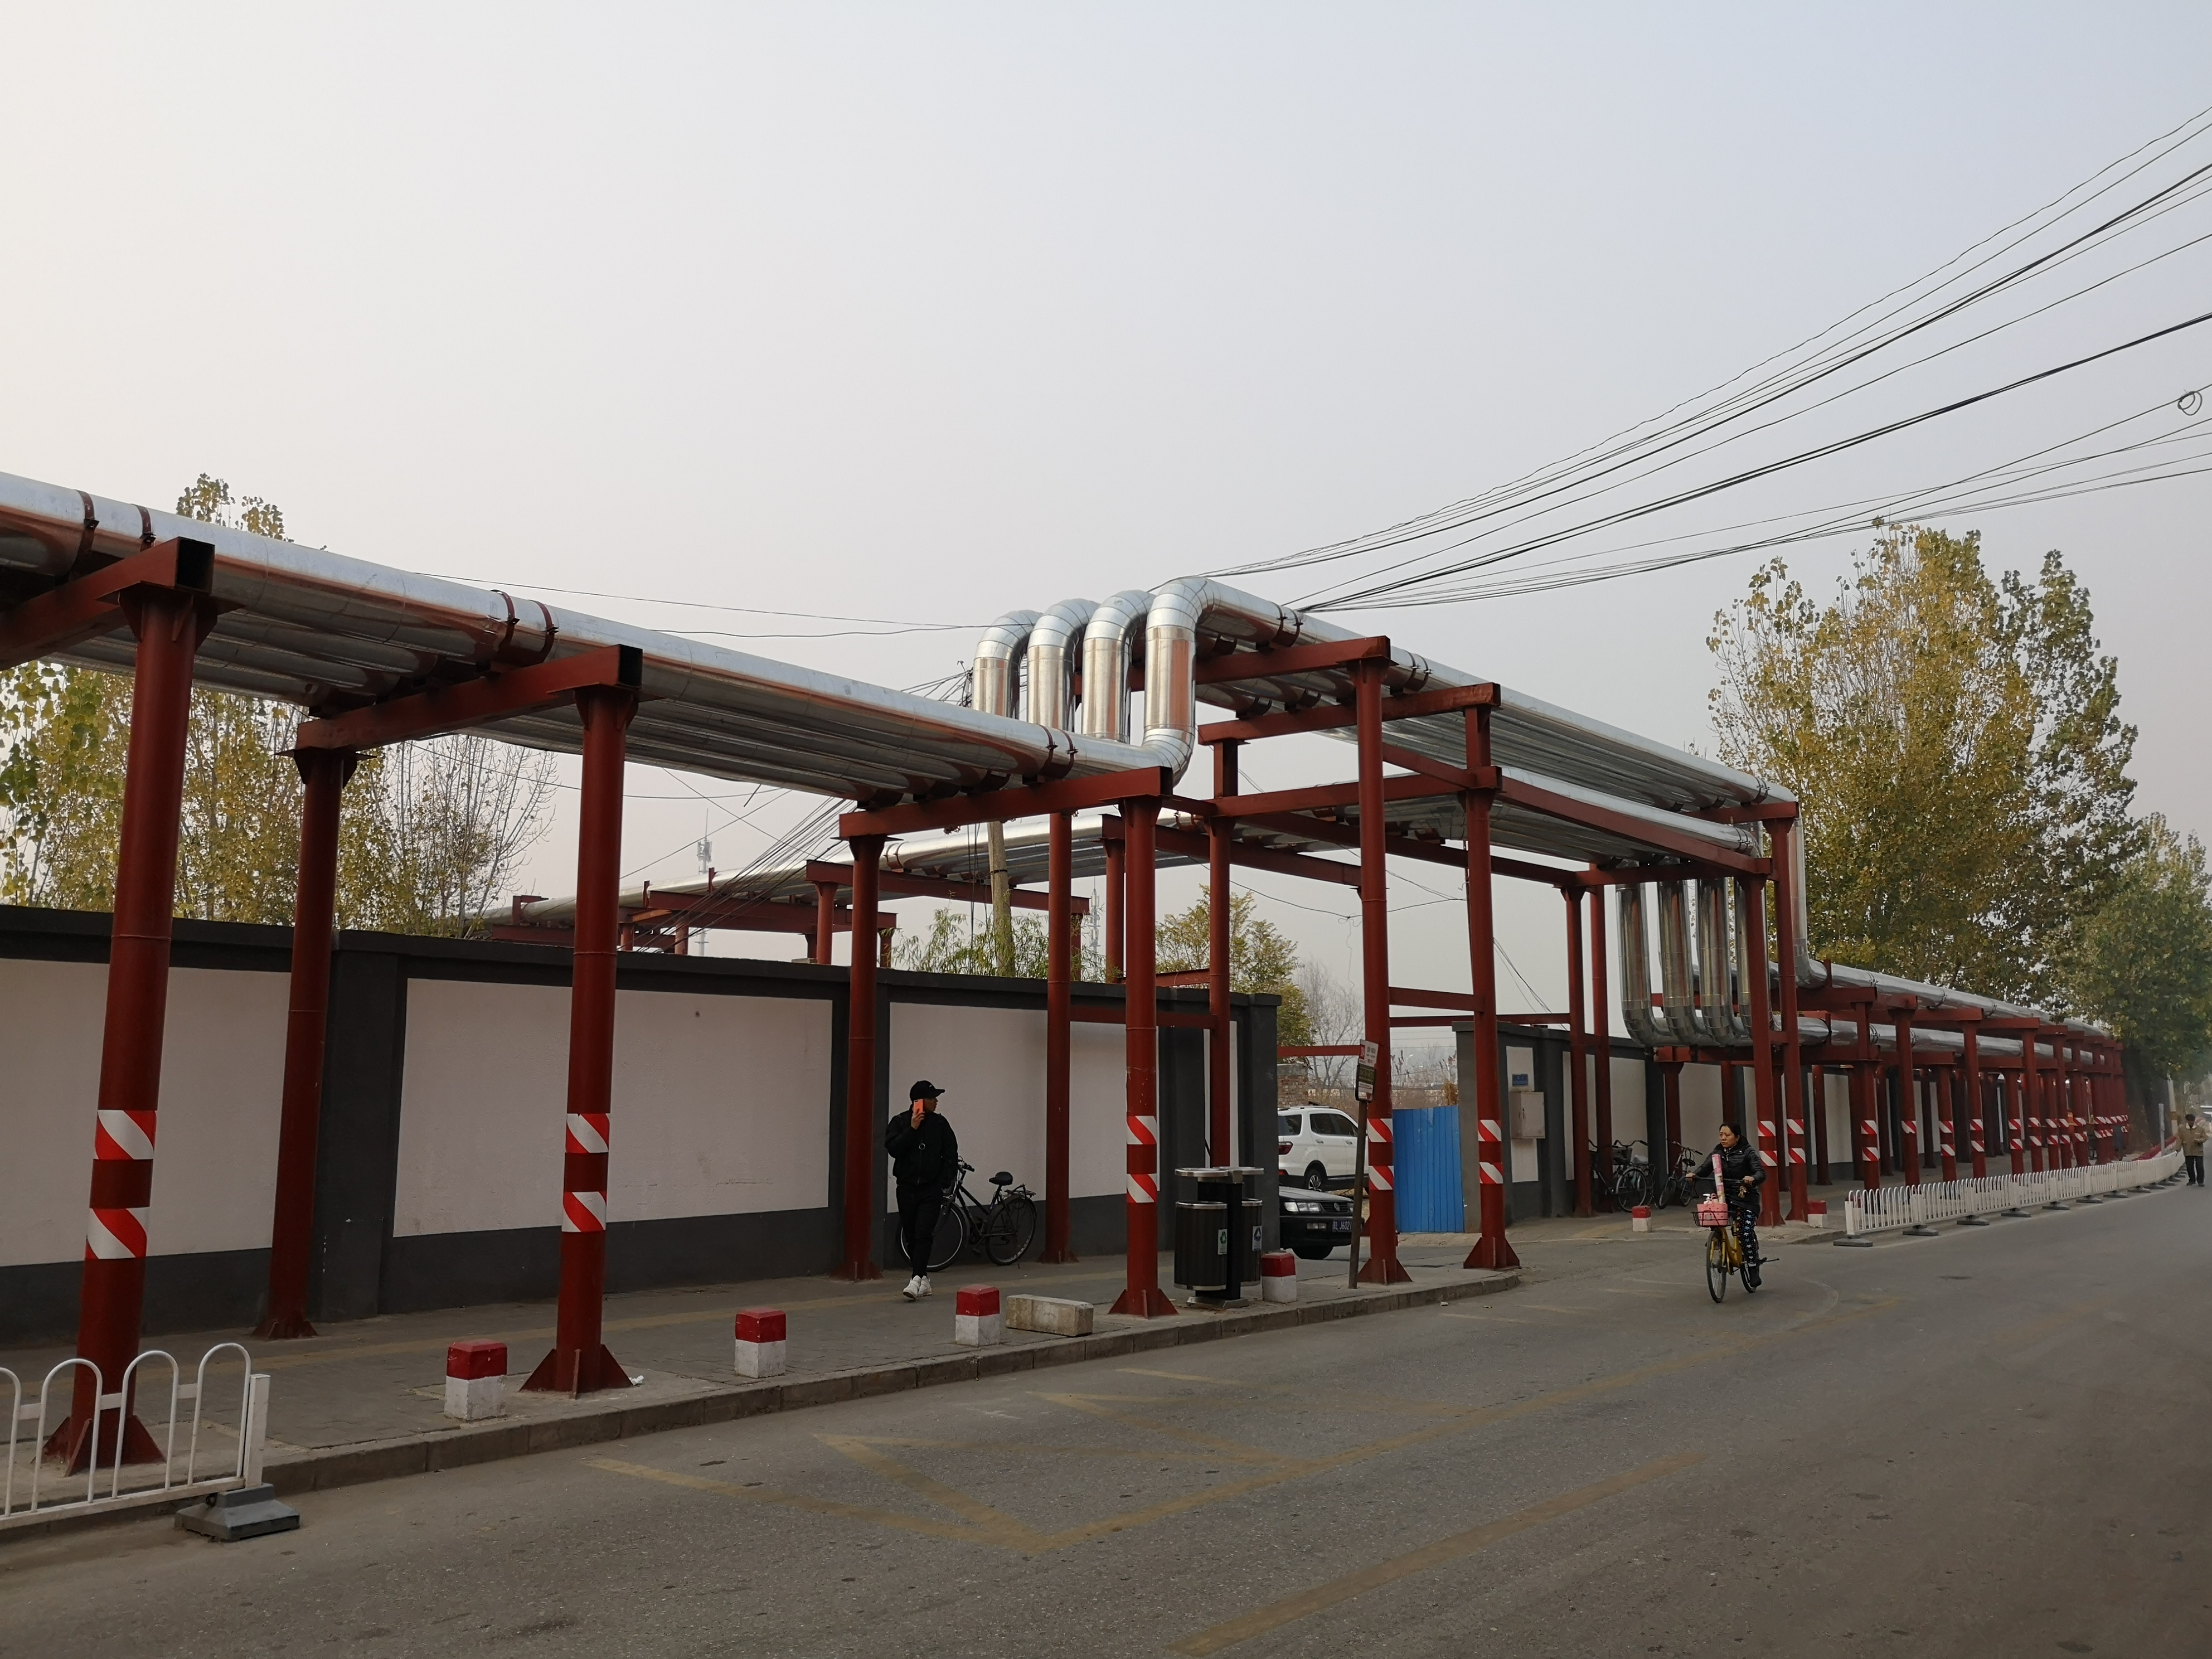 Pipes, half a metre in diameter, have been installed on poles, bringing hot water from the town of Xibeiwang. Photo credit: Feng Hao